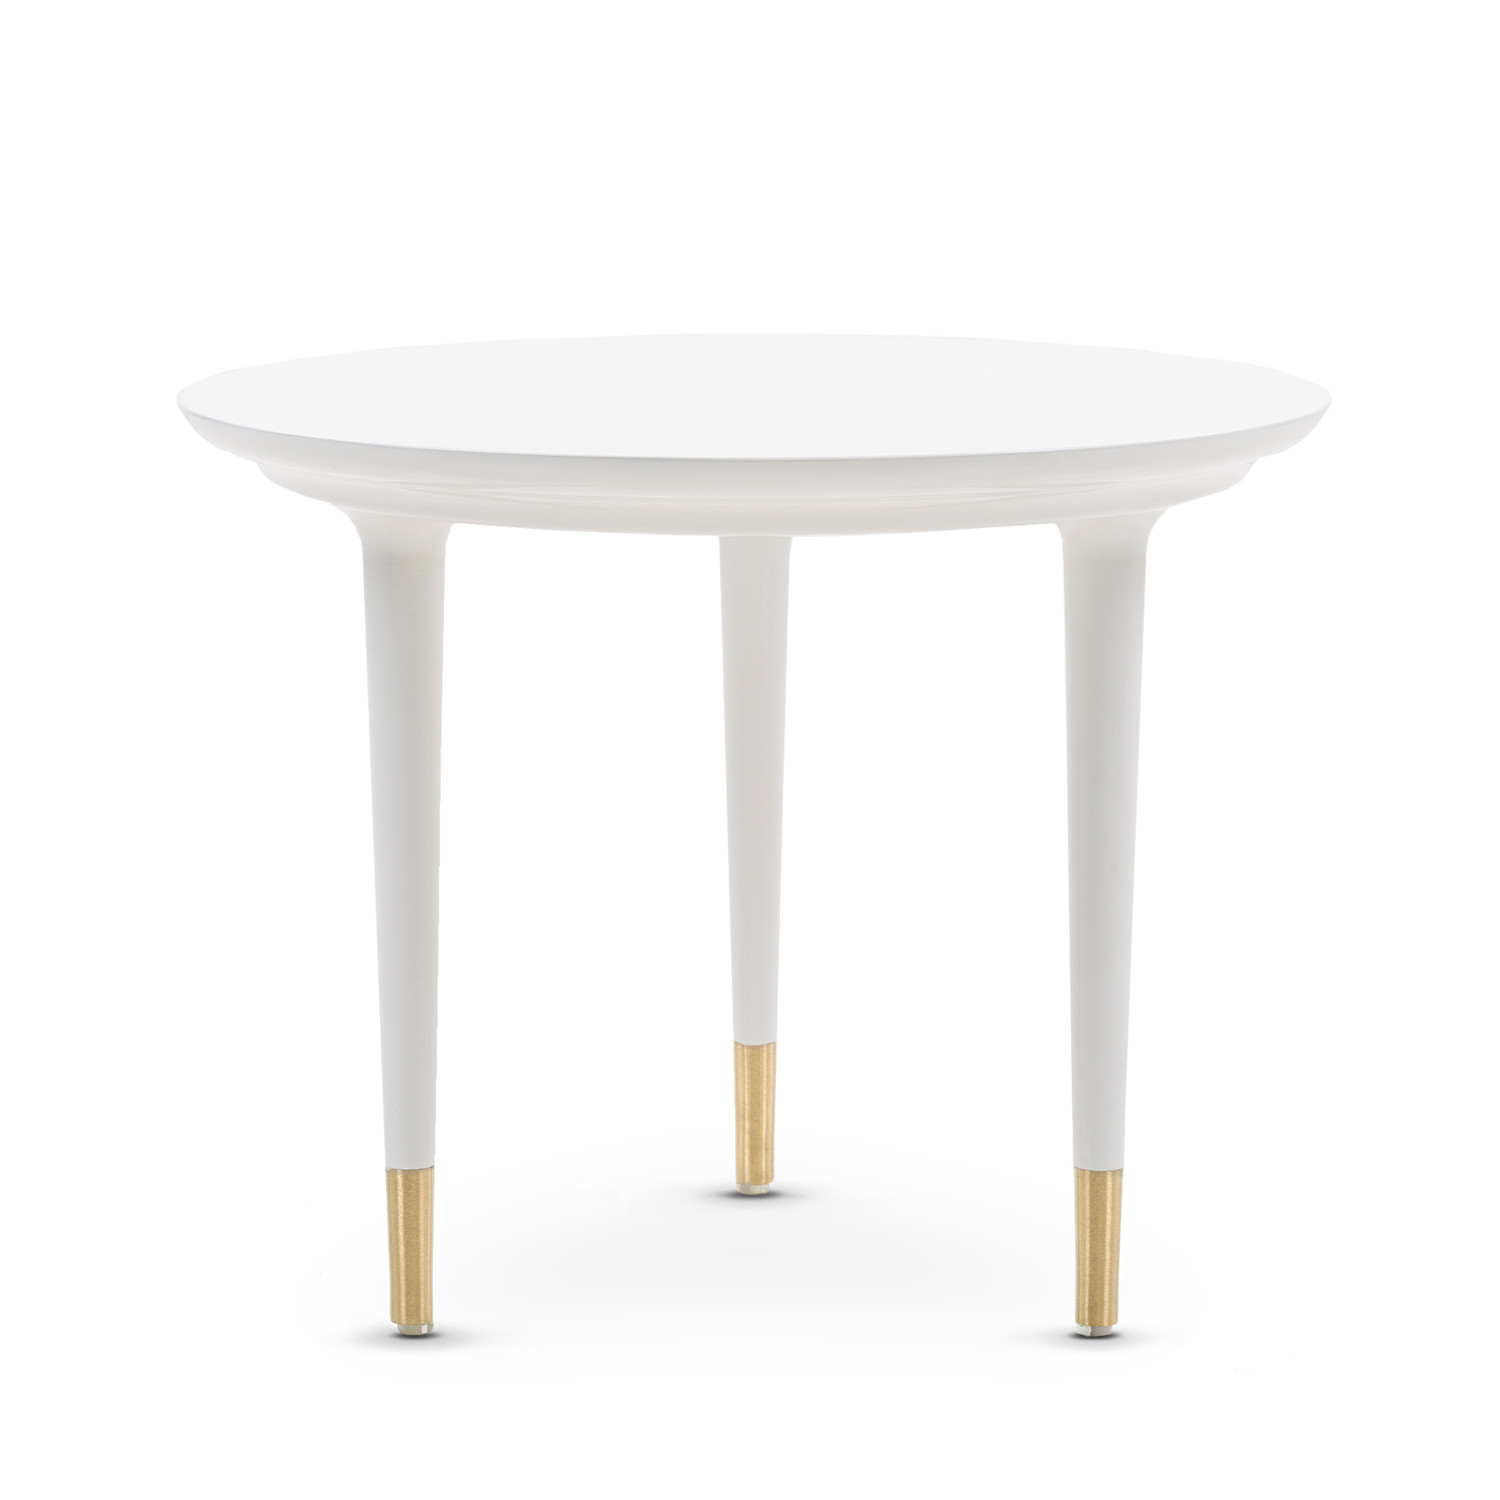 Lunar side table black stellar works touch of modern - Lunar Side Table Black Stellar Works Touch Of Modern